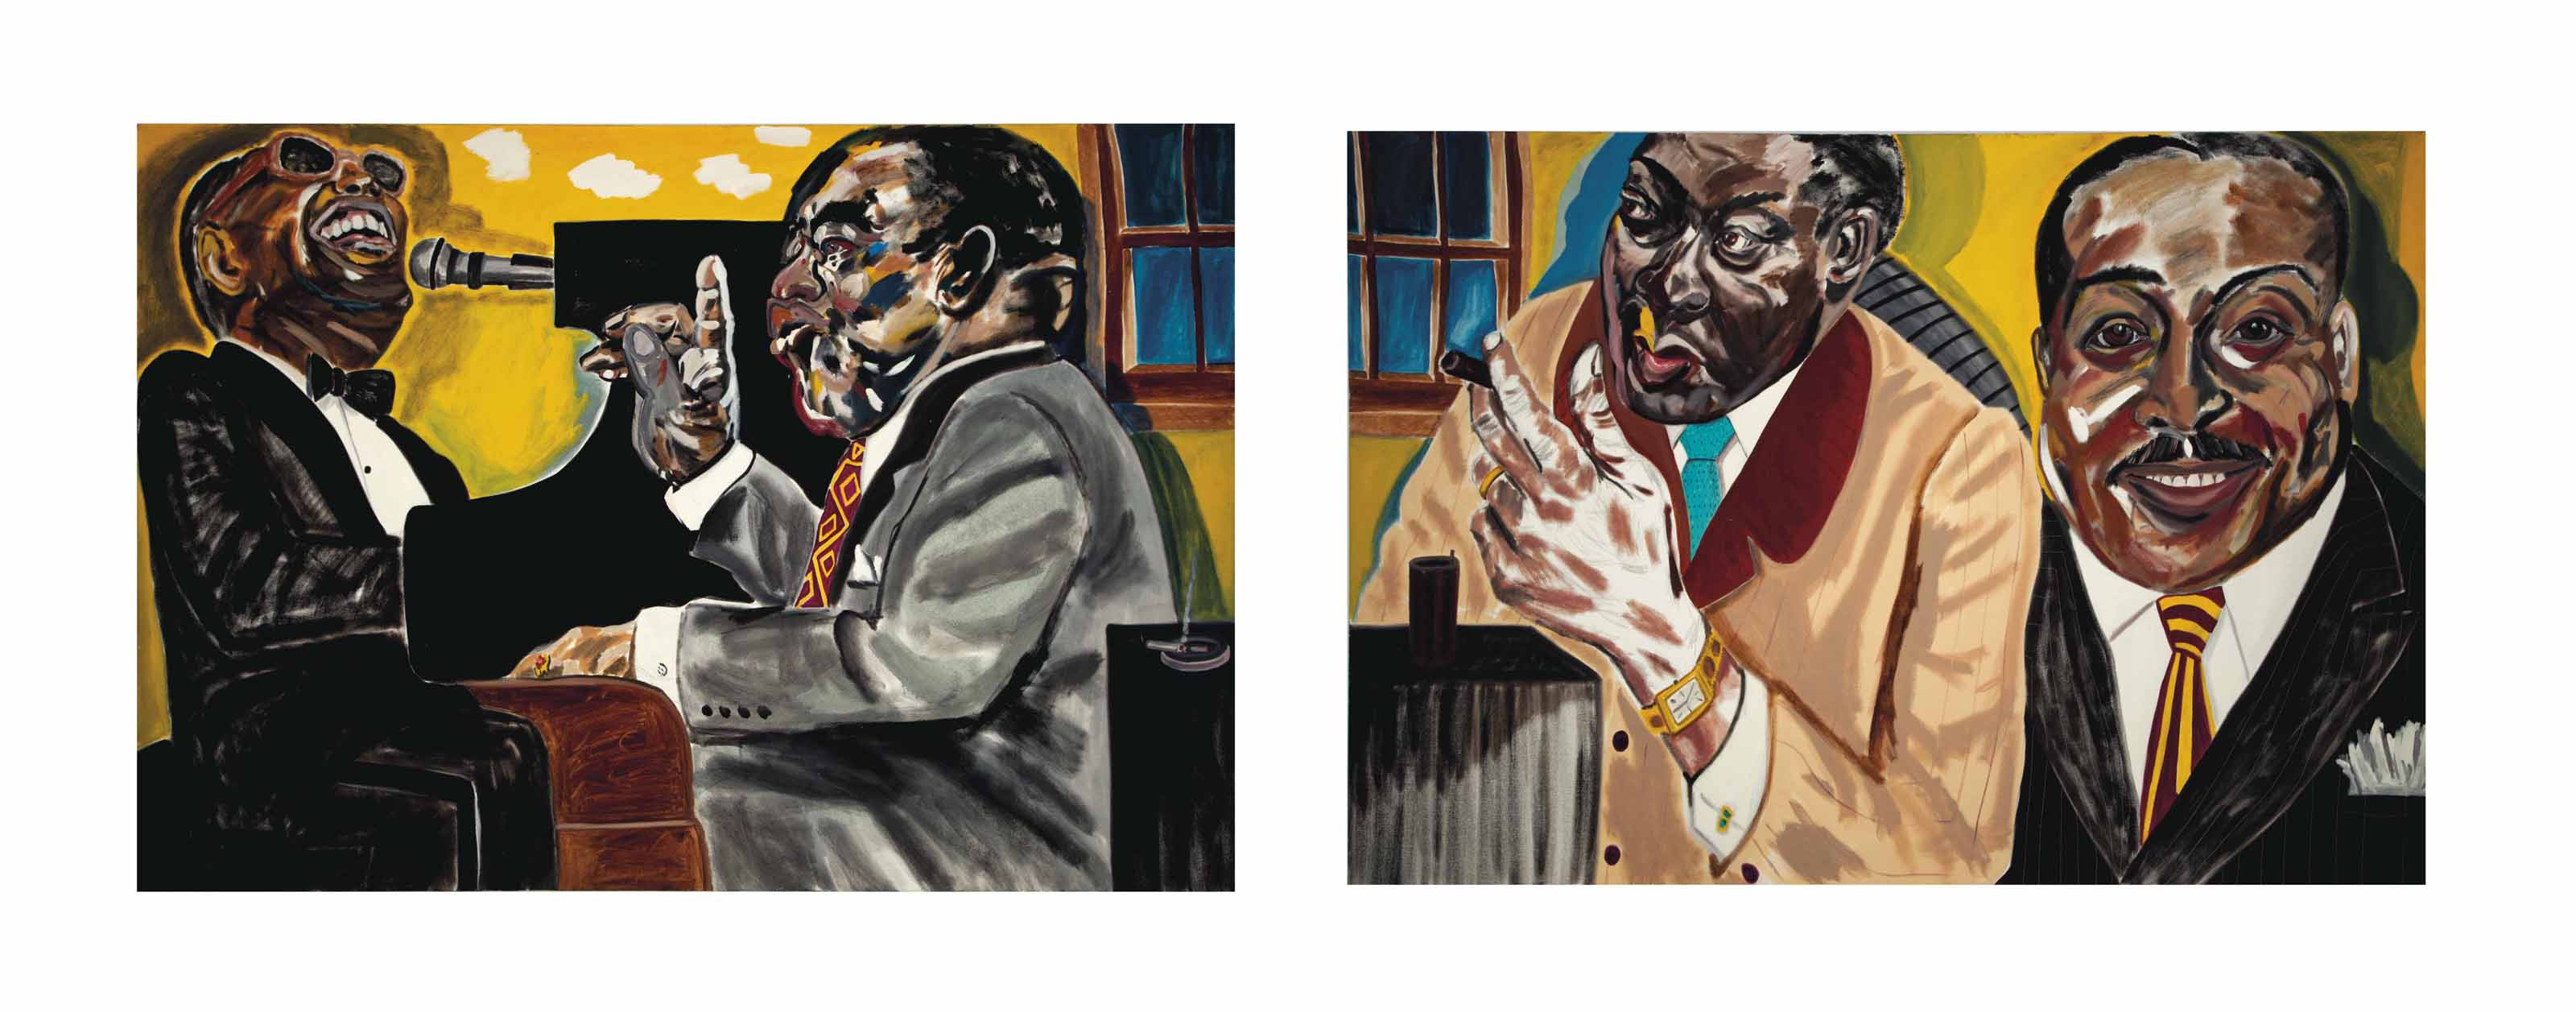 The Piano Men (Ray Charles, Roosevelt Skykes, Memphis Slim, Count Basie): a diptych